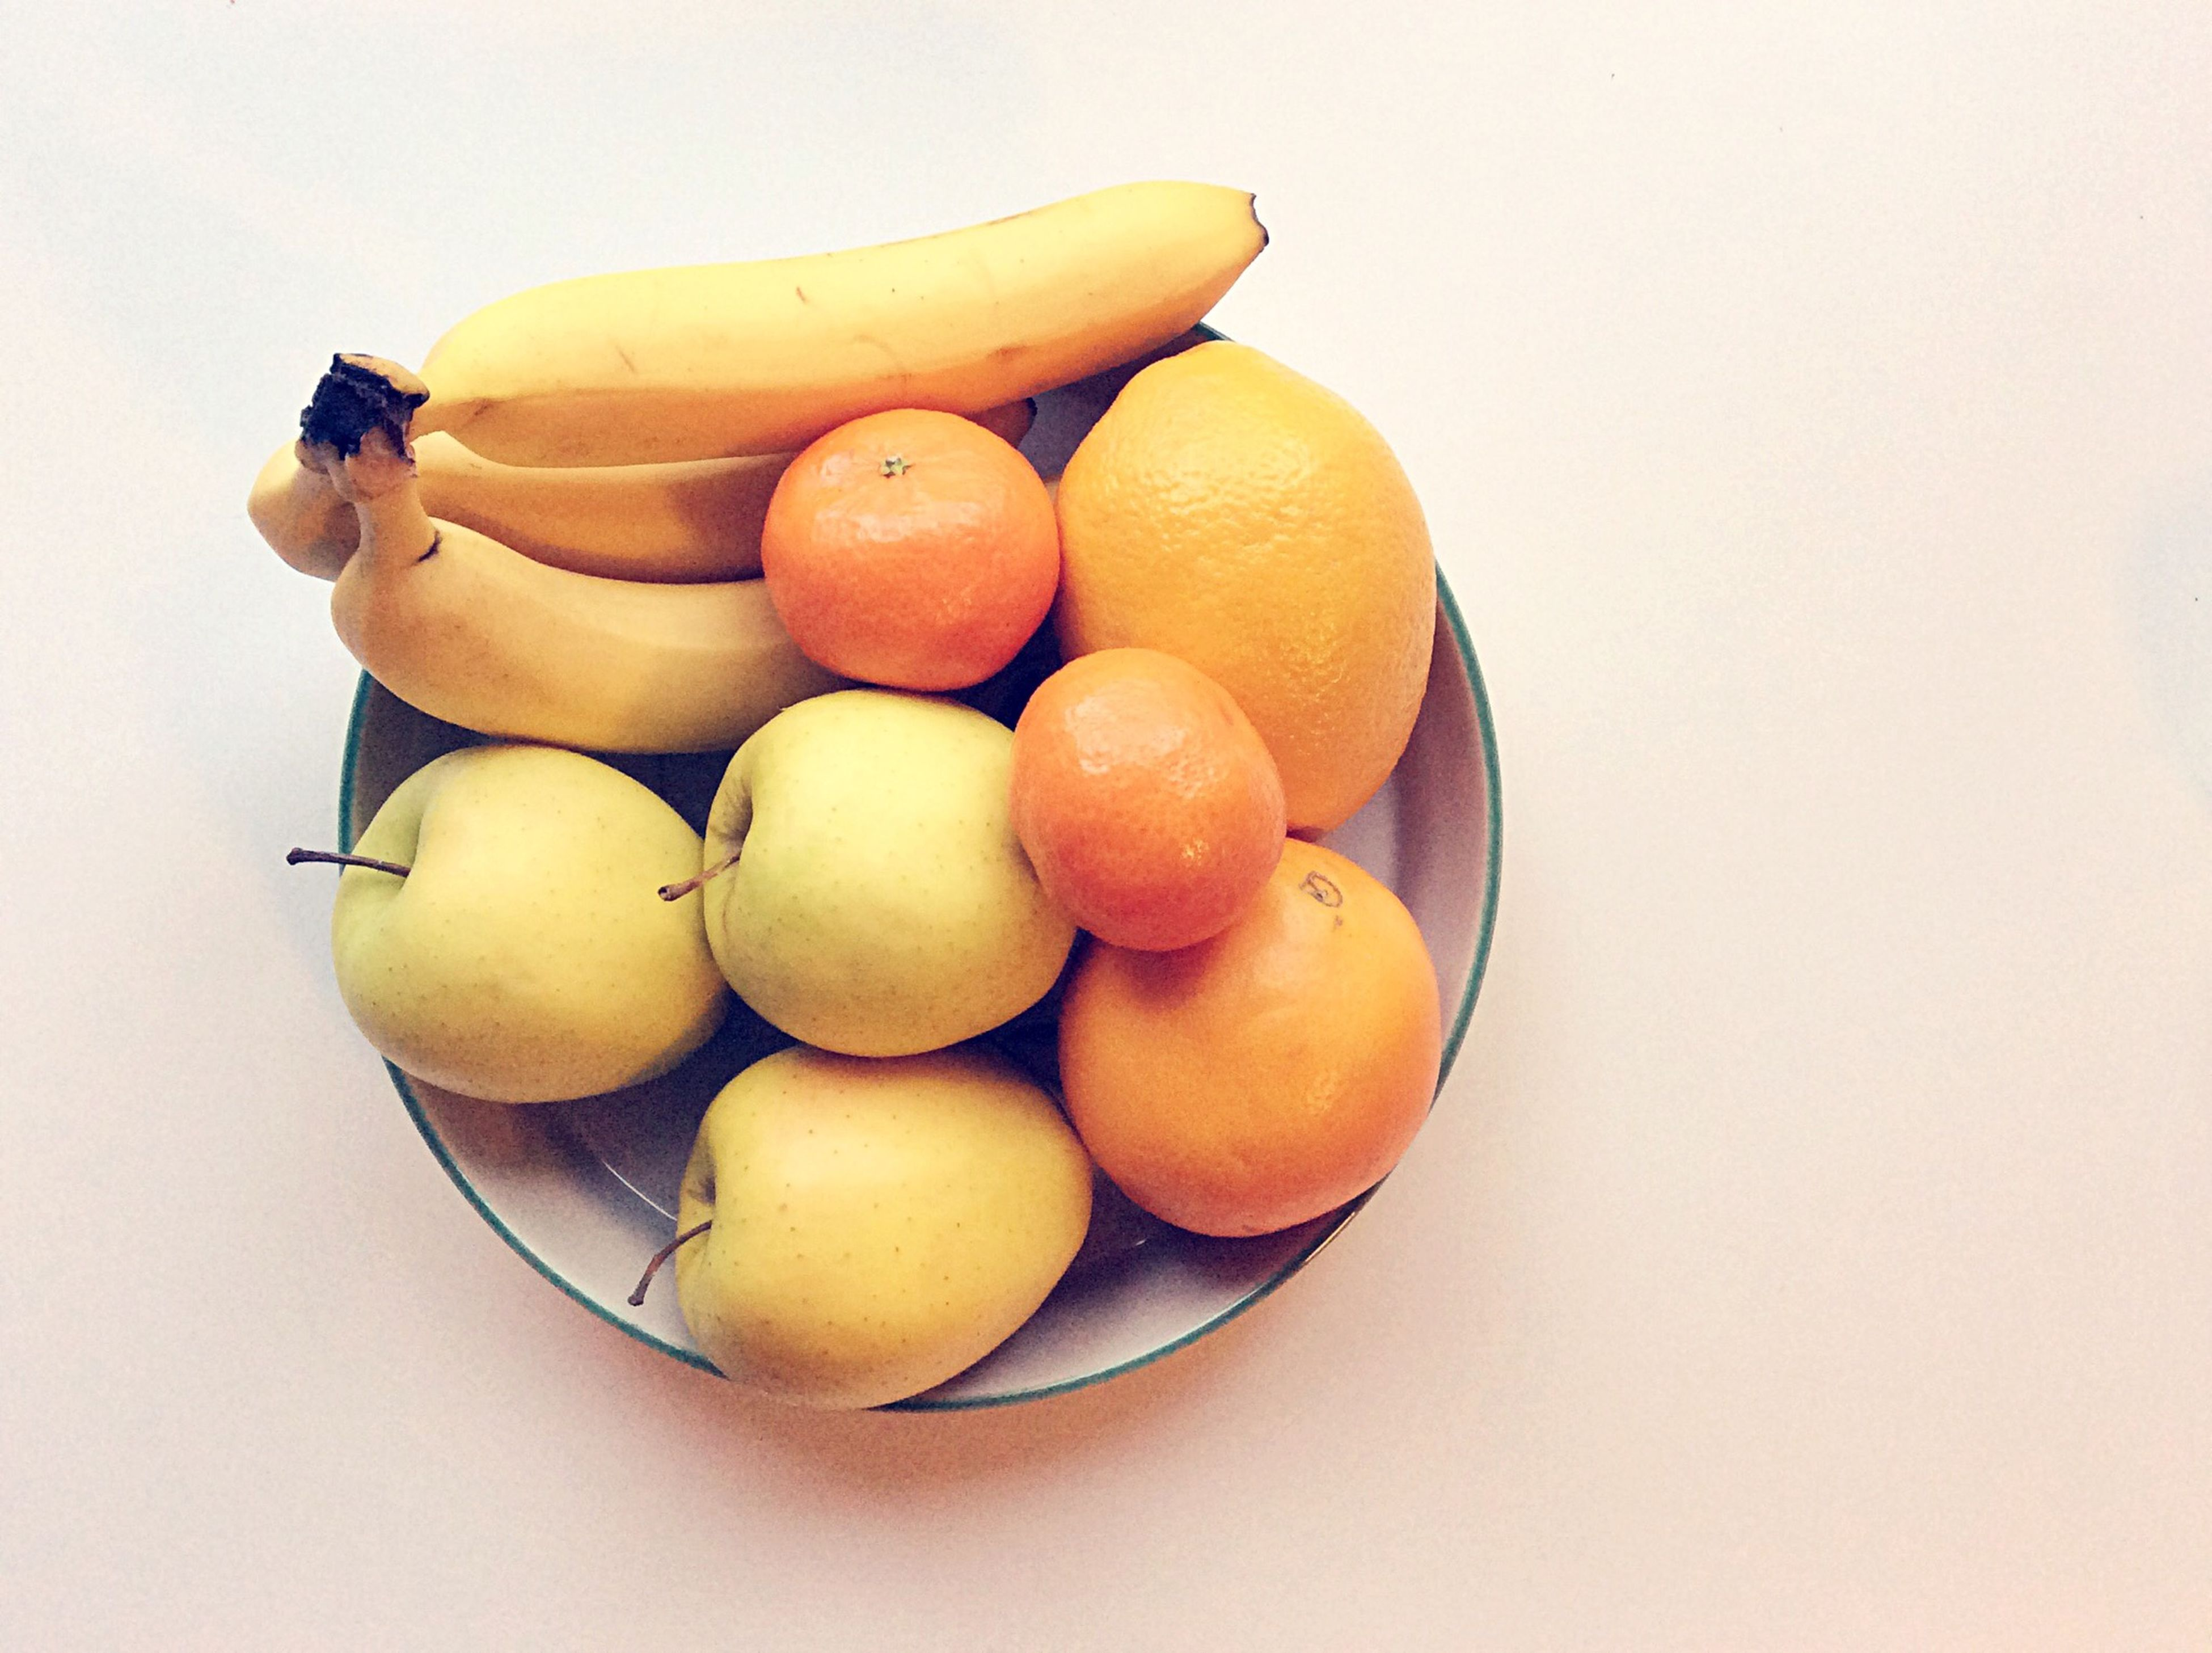 food and drink, food, healthy eating, fruit, studio shot, white background, freshness, still life, indoors, table, orange - fruit, copy space, banana, organic, close-up, ripe, high angle view, directly above, pear, apple